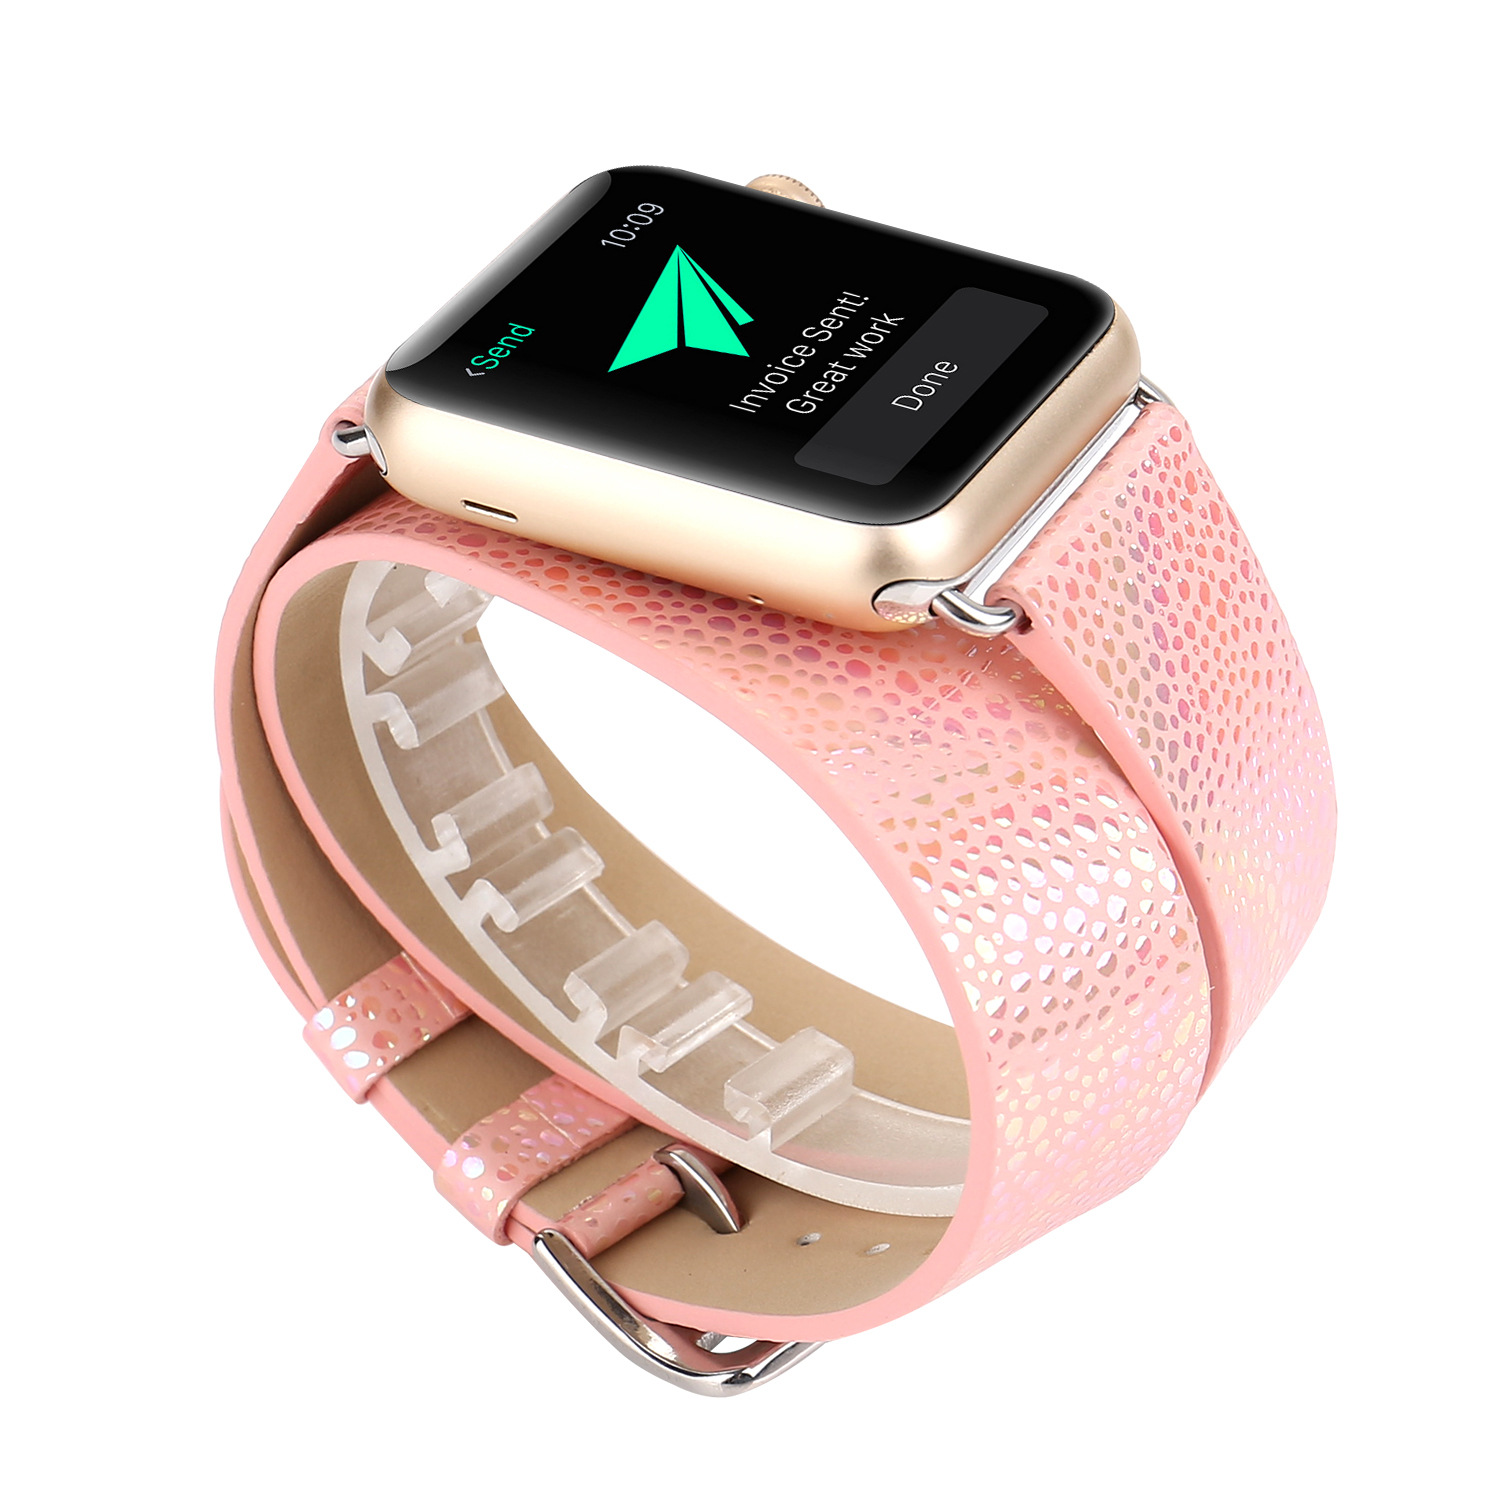 Applicable APPLE Watch Single Double Coils Flash Snakeskin Watch Strap Iwatch1234 Apple Watch Leather Watch Strap